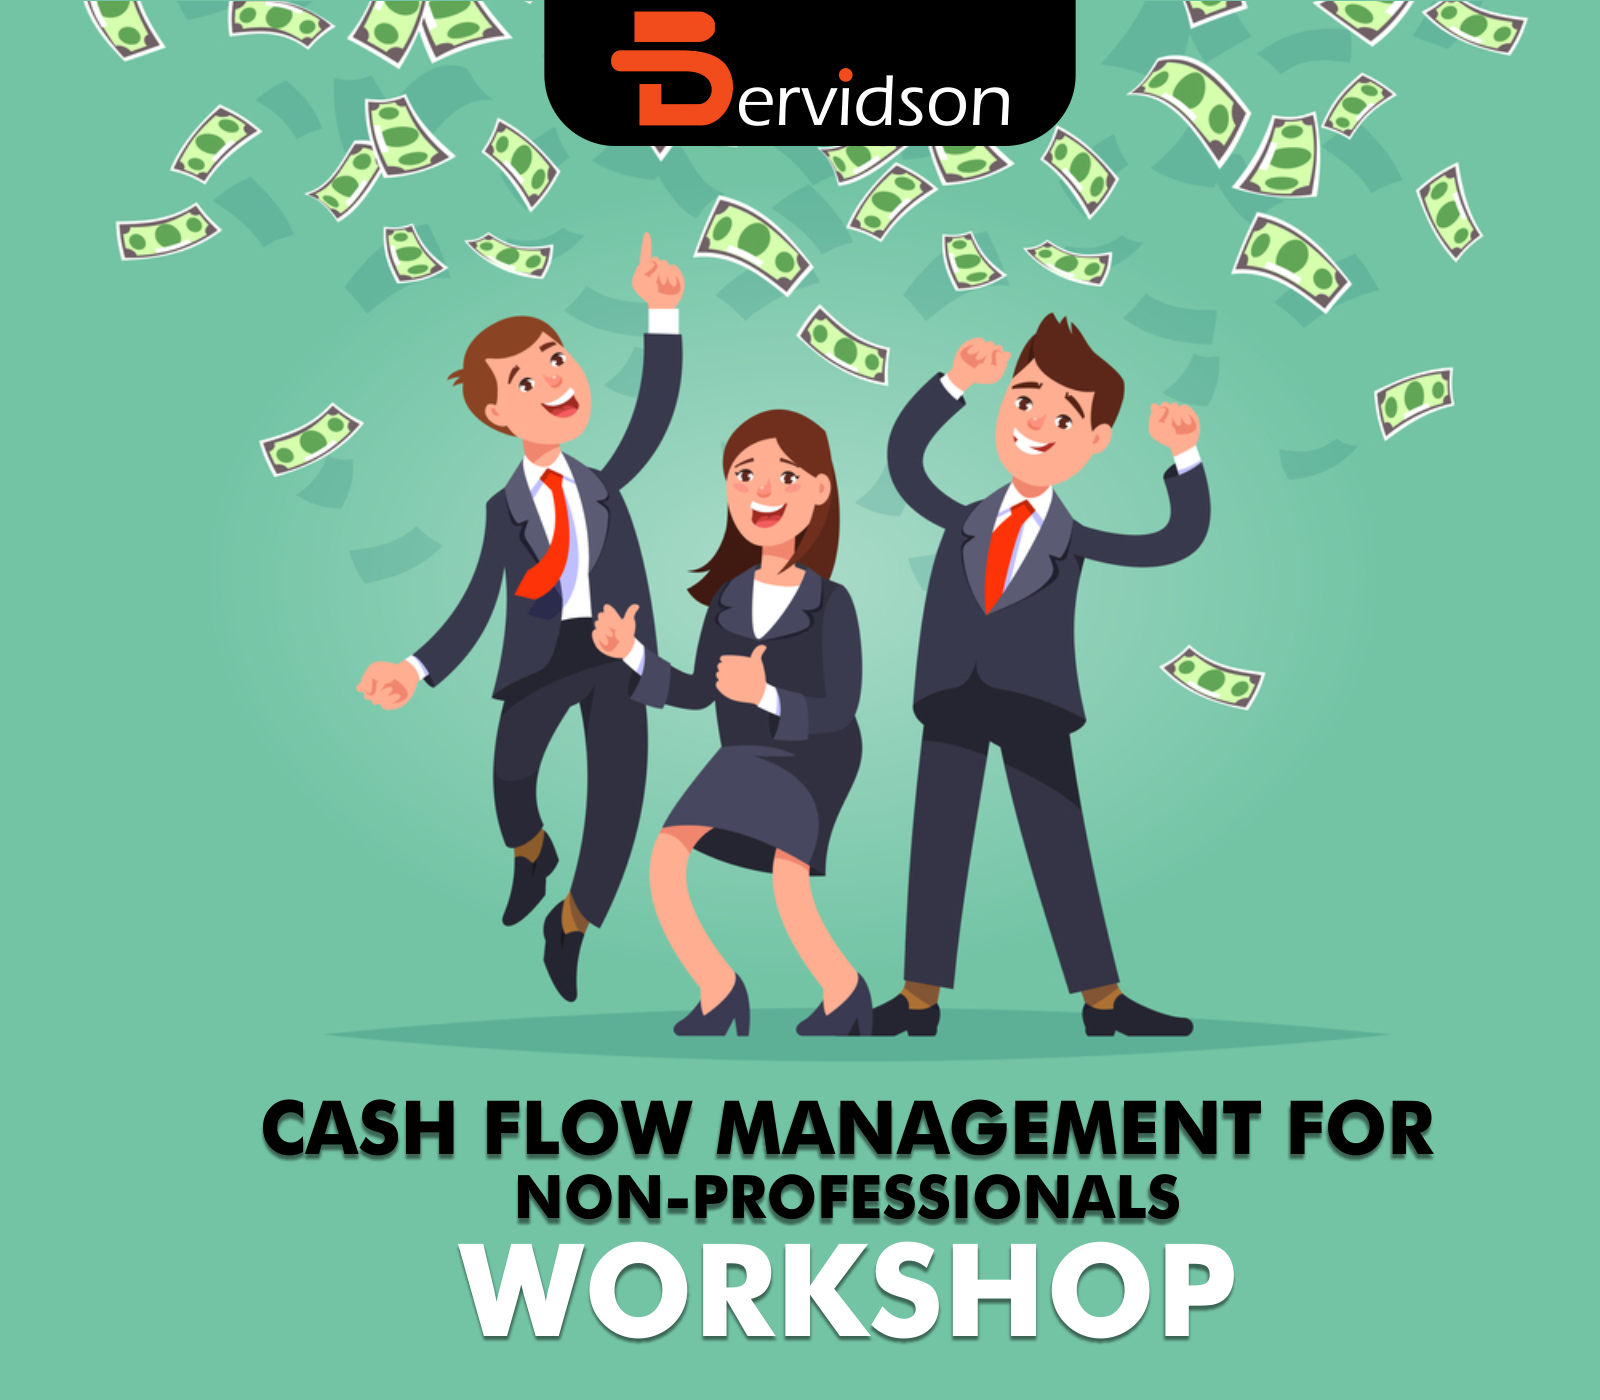 Cash Flow Management for Non-Professionals Workshop